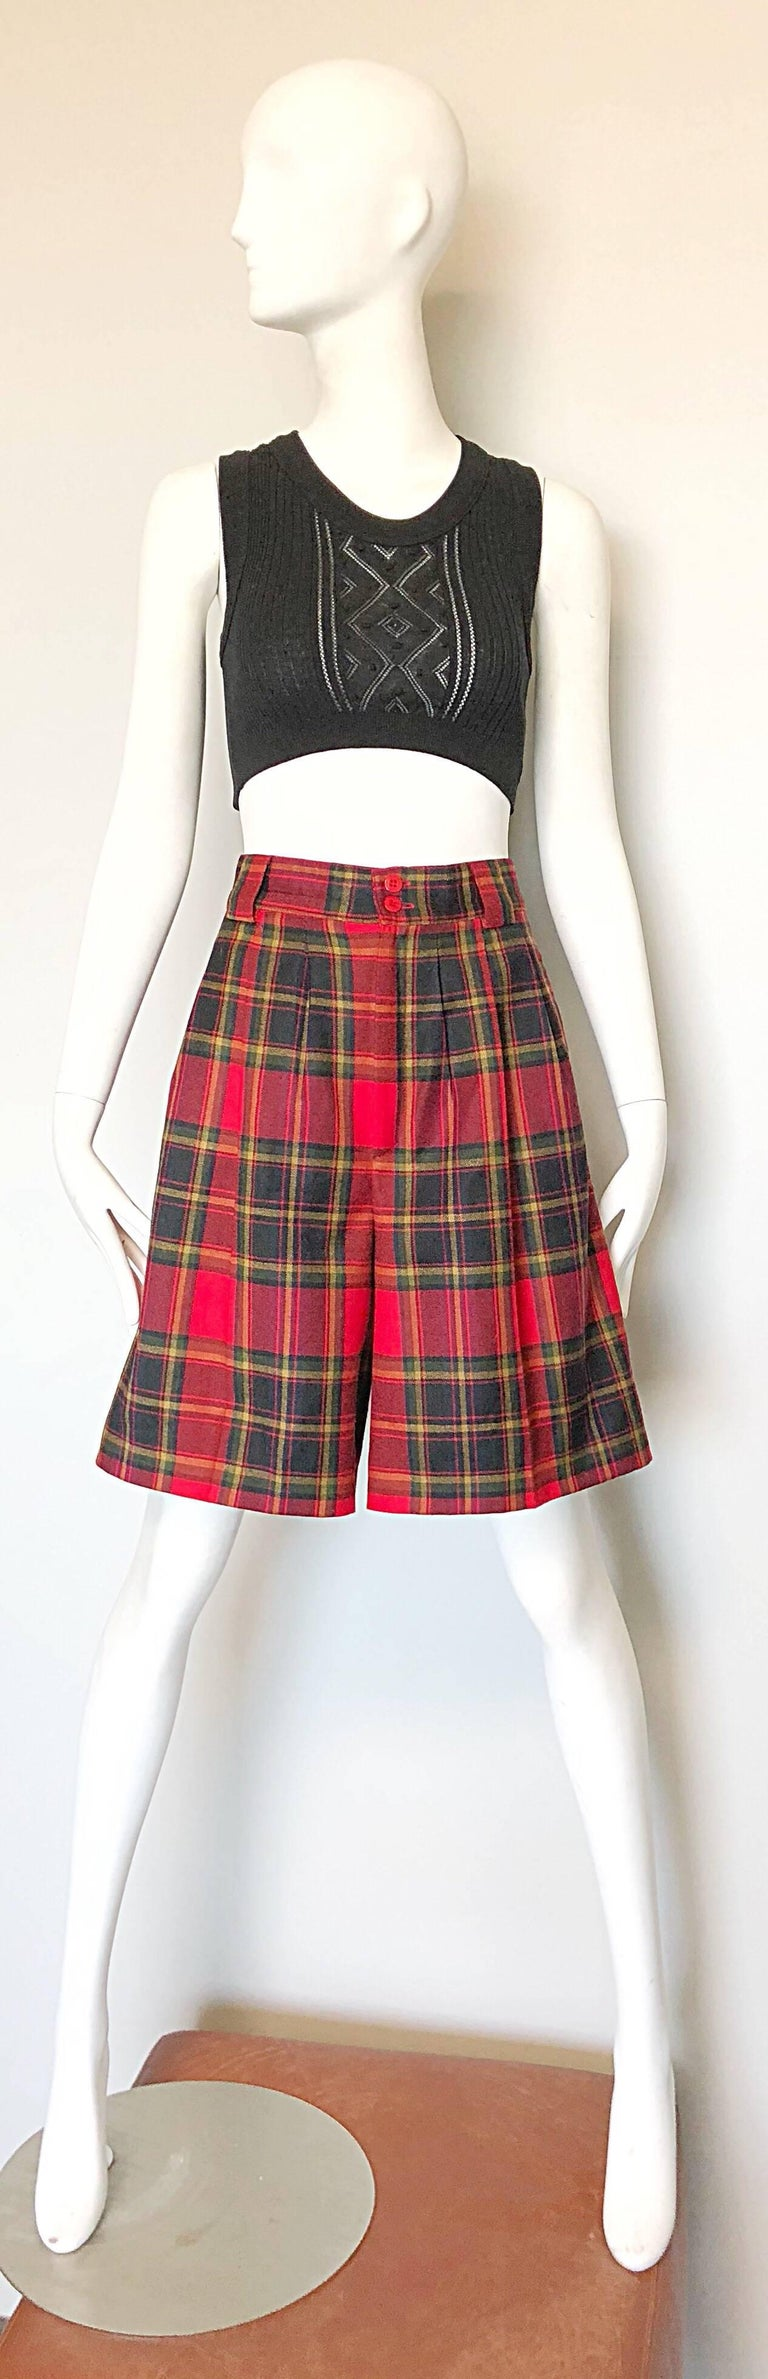 Chic 80s GIROGIO di SANT ANGELO red tartan plaid high waisted wide leg culottes / shorts! Features pleats at the waist, with zipper fly and double button closure. Pockets at each side of the waist and on the rear. Can easily be dressed up or down.